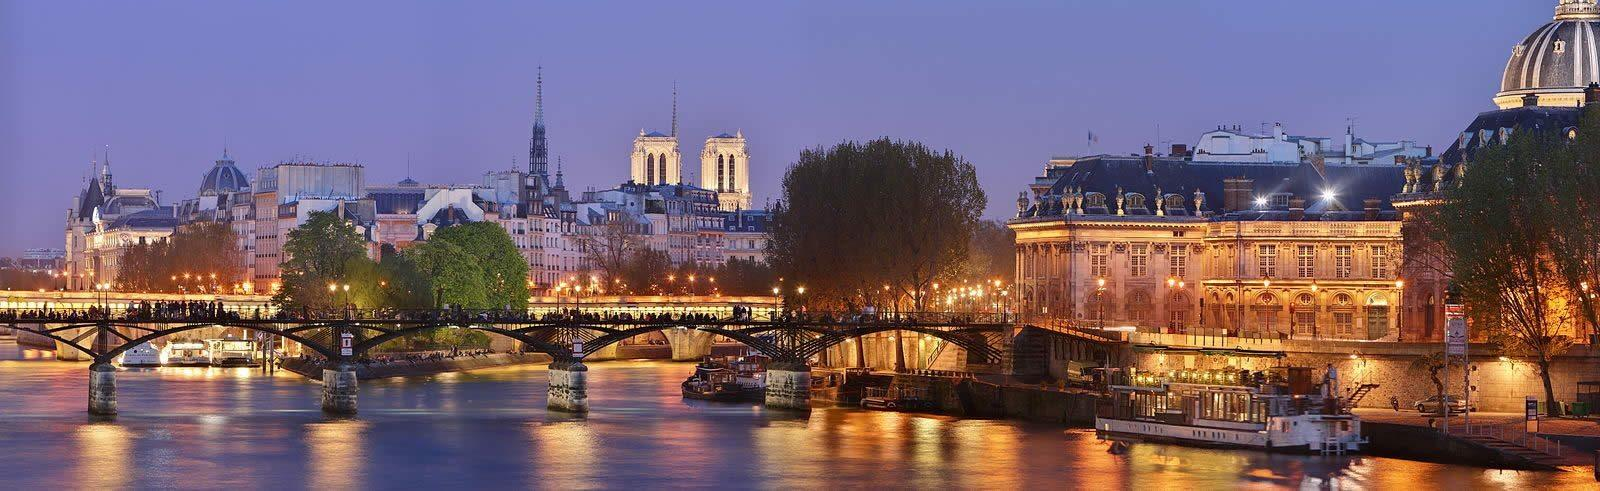 barnes-around-paris-real-estate-agency